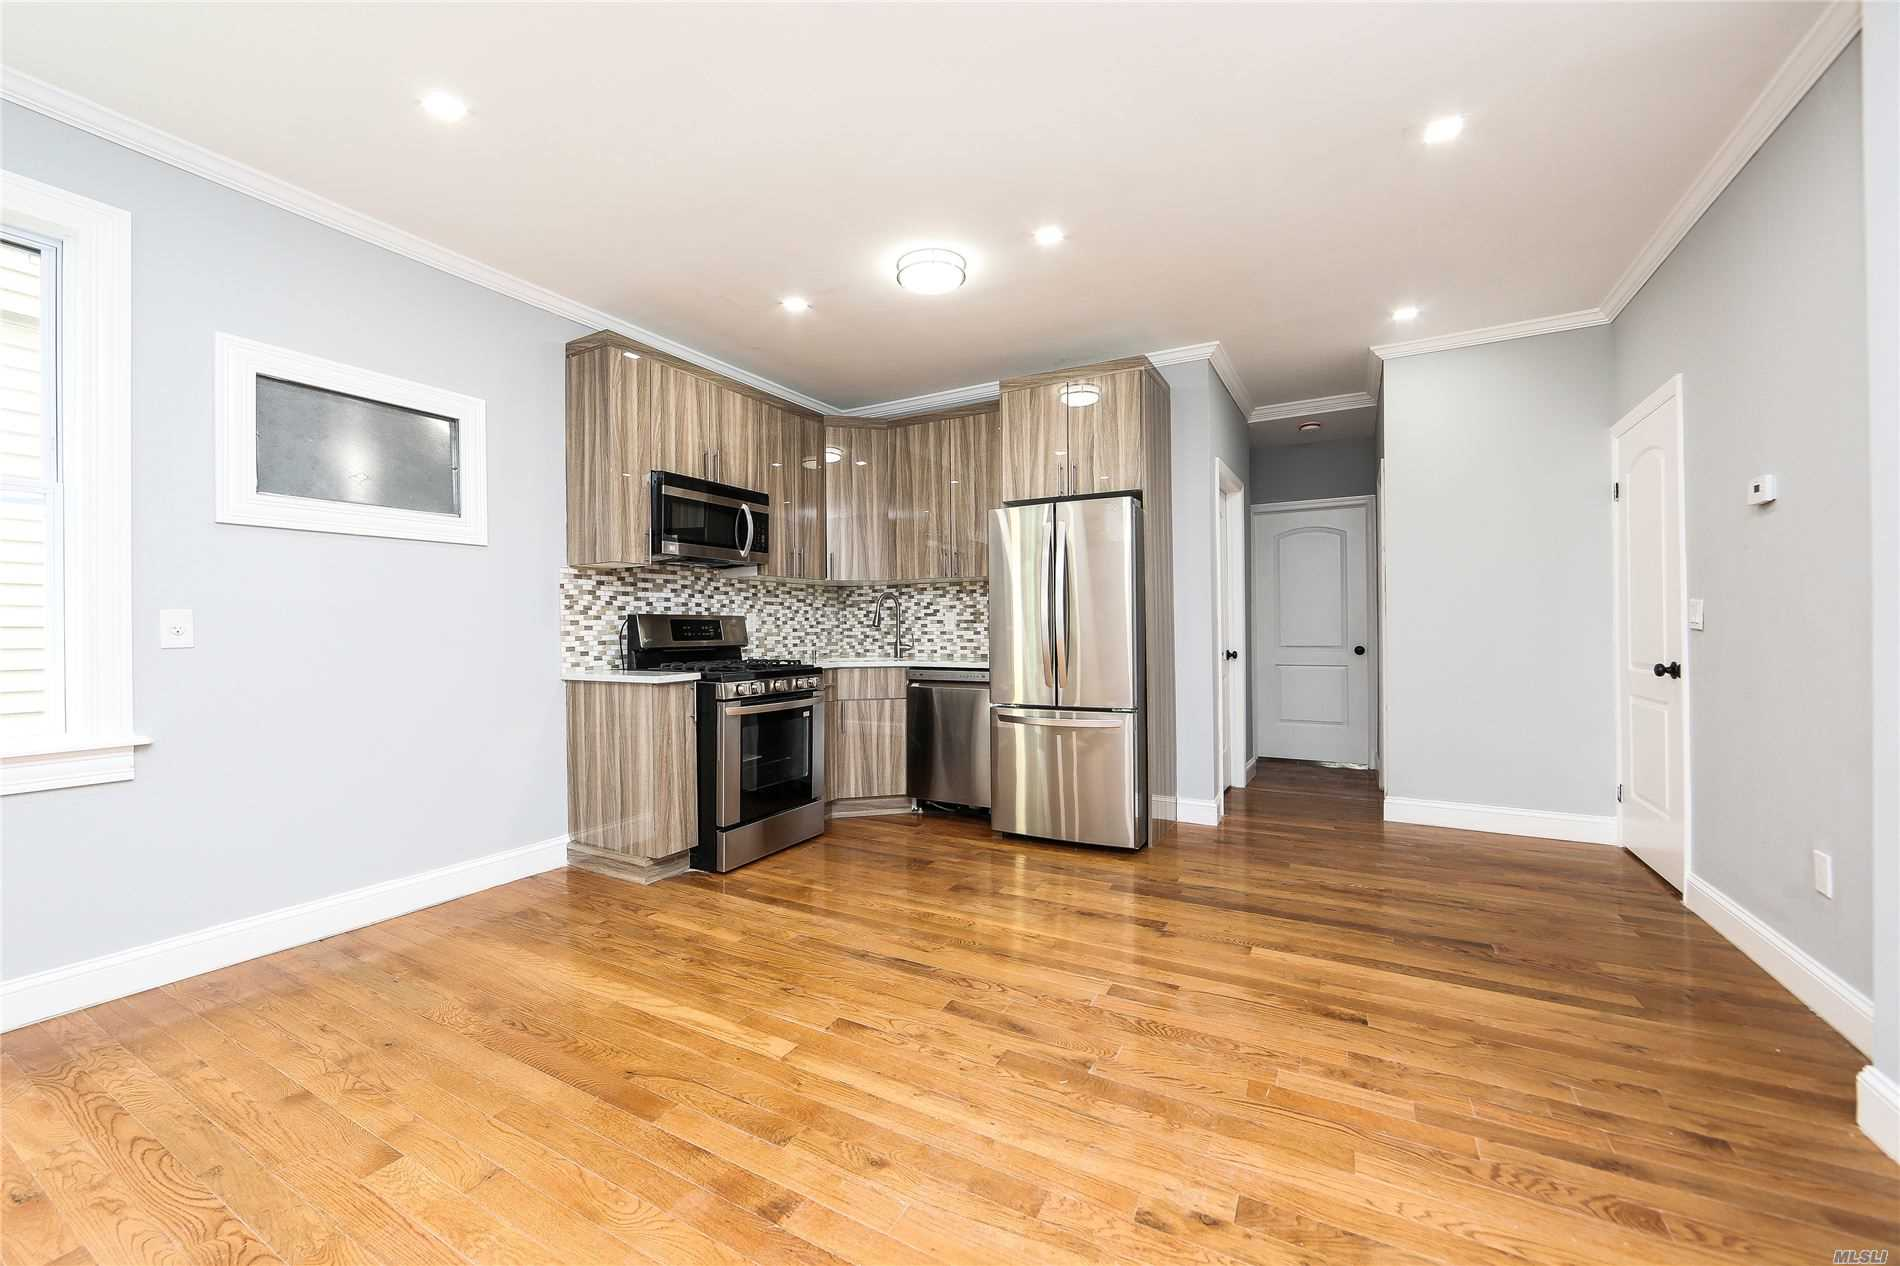 459 Milford St, Brooklyn-Lefferts Gardens and Brownsville, New York